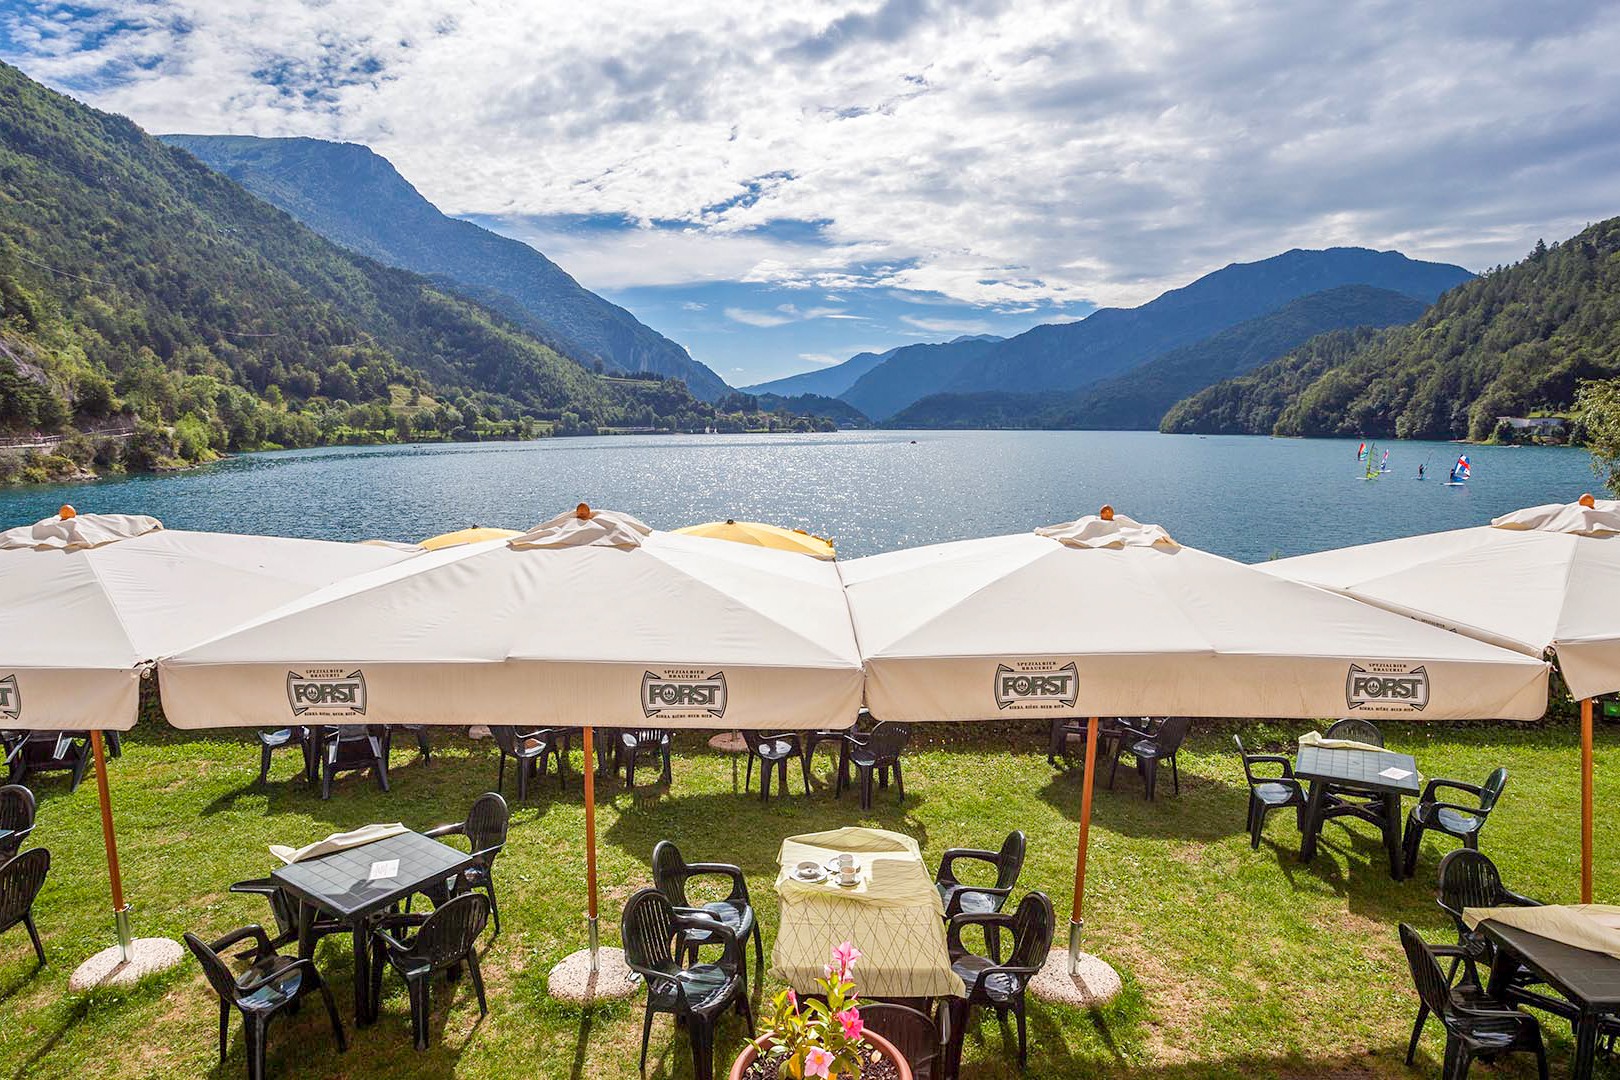 tables-in-garden-of-restaurant-overlooking-a-beautiful-lake-and-mountains-in-the-summer-hotel-lido-valle-di-ledro-lago-di-ledro-trentino-italy